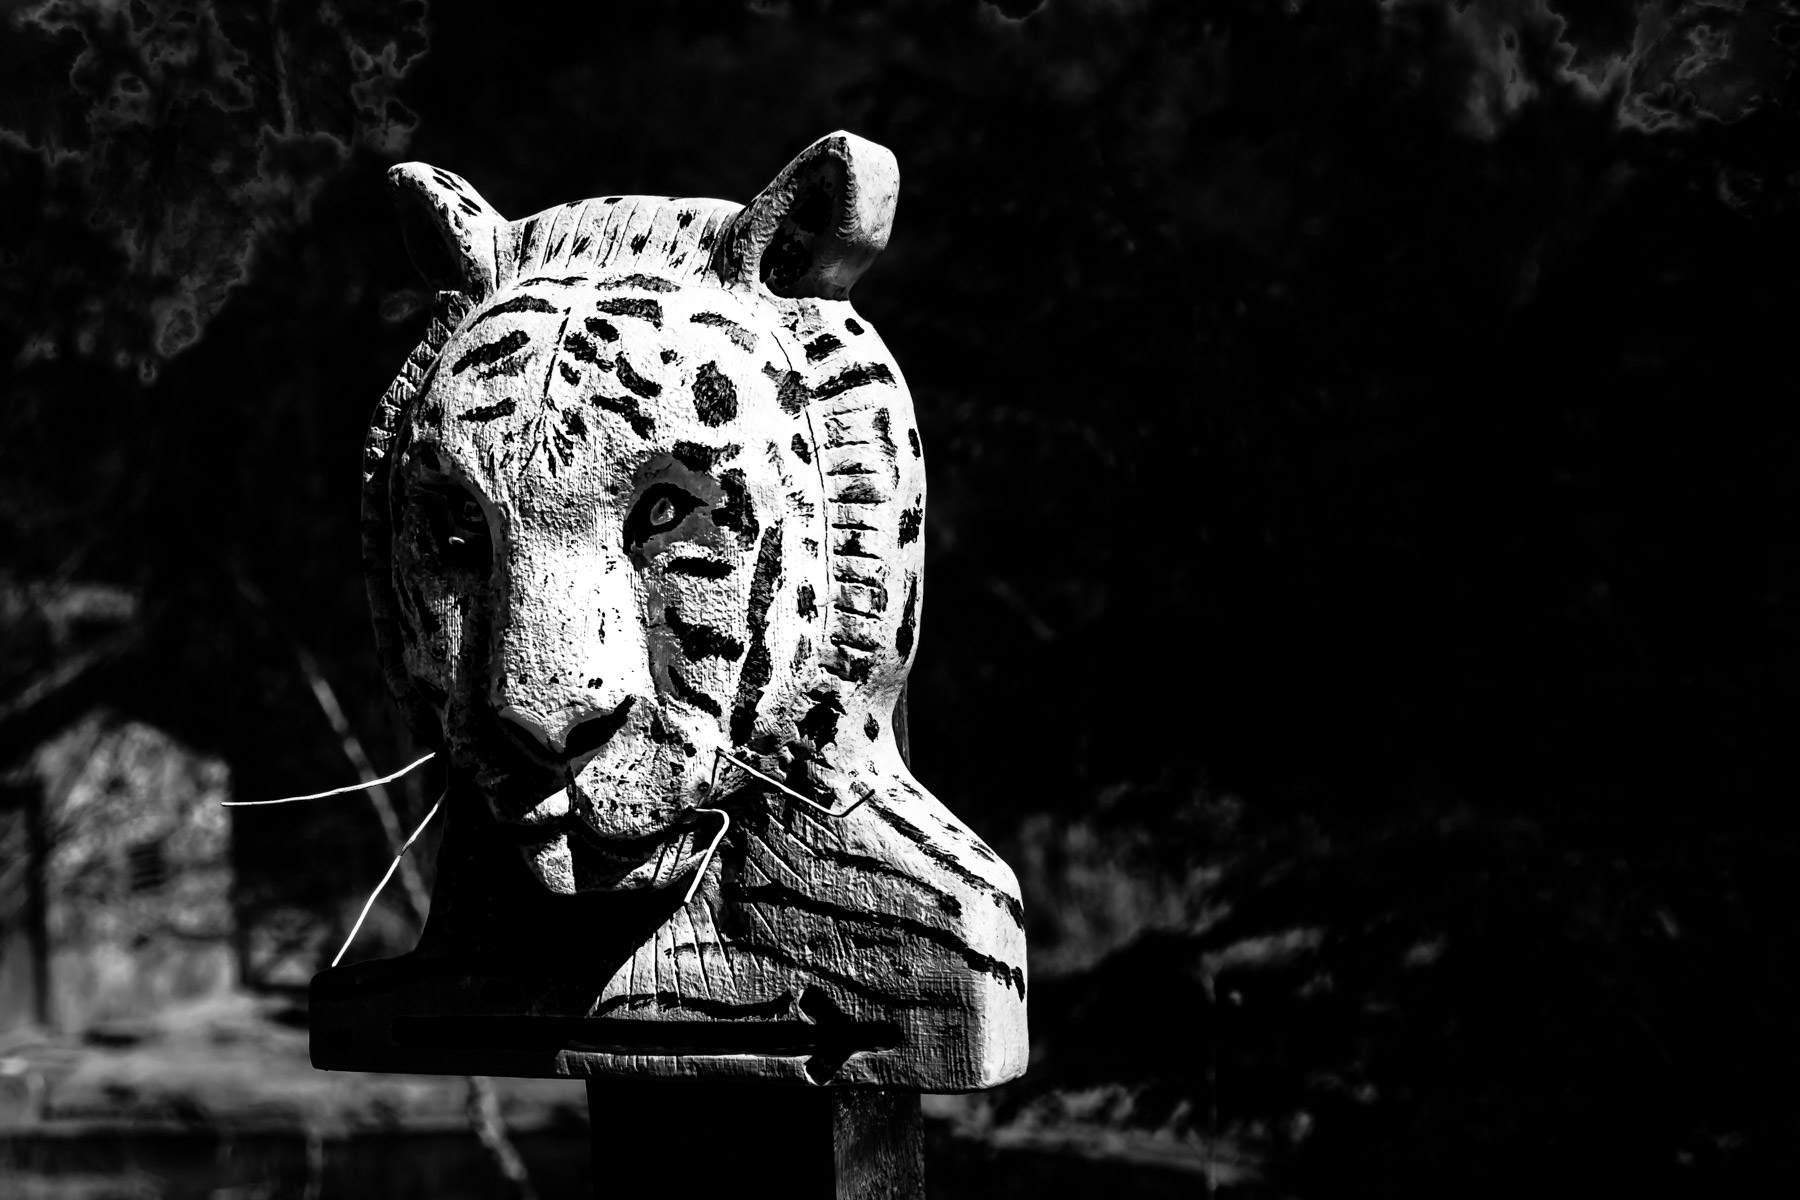 A lion head-shaped sign at the Caldwell Zoo, Tyler, Texas.